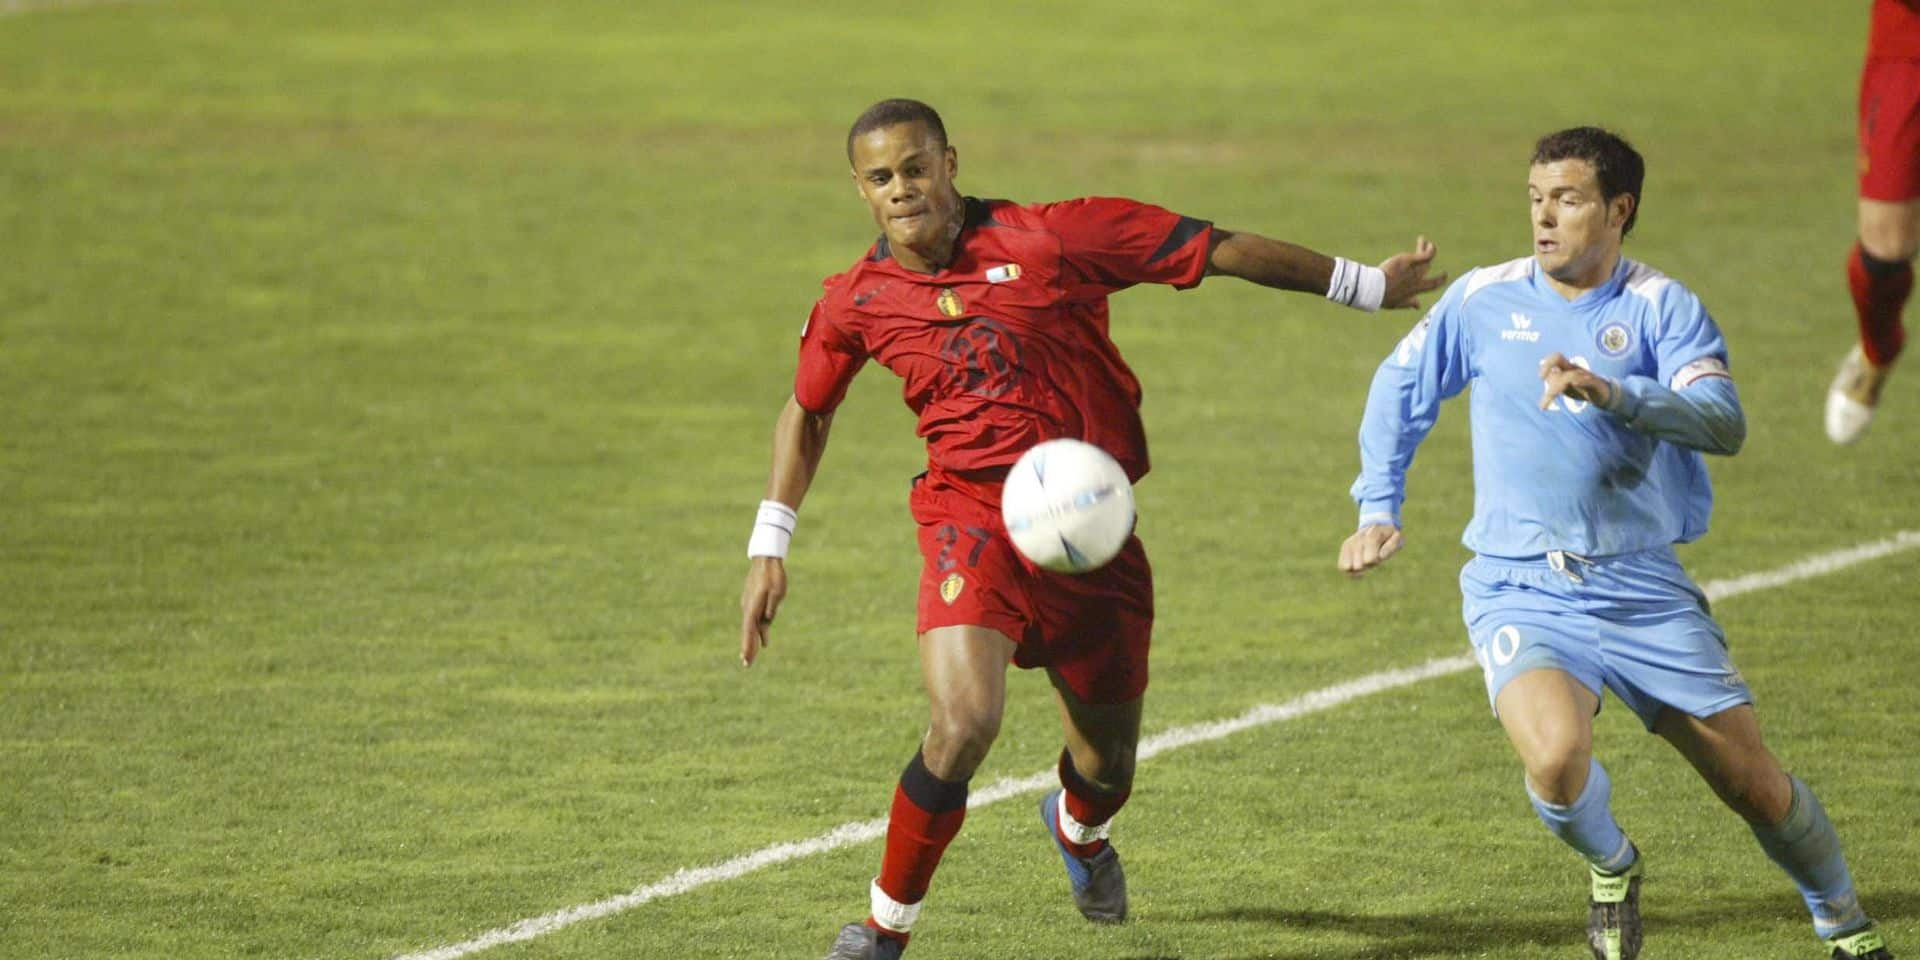 BRU157 - 20050330 - SERRAVALLE, SAN MARINO: Red Devils' Vincent Kompany (L) and San Marino's Andy Selva (R) fight for the ball during the 2006 World Cup qualifying soccer match Belgium vs San Marino, Wednesday 30 March 2005 at the Stadio Di Serravalle in San Marino. Belgium won 1-2. BELGA PHOTO FRANCOIS WALSCHAERTS